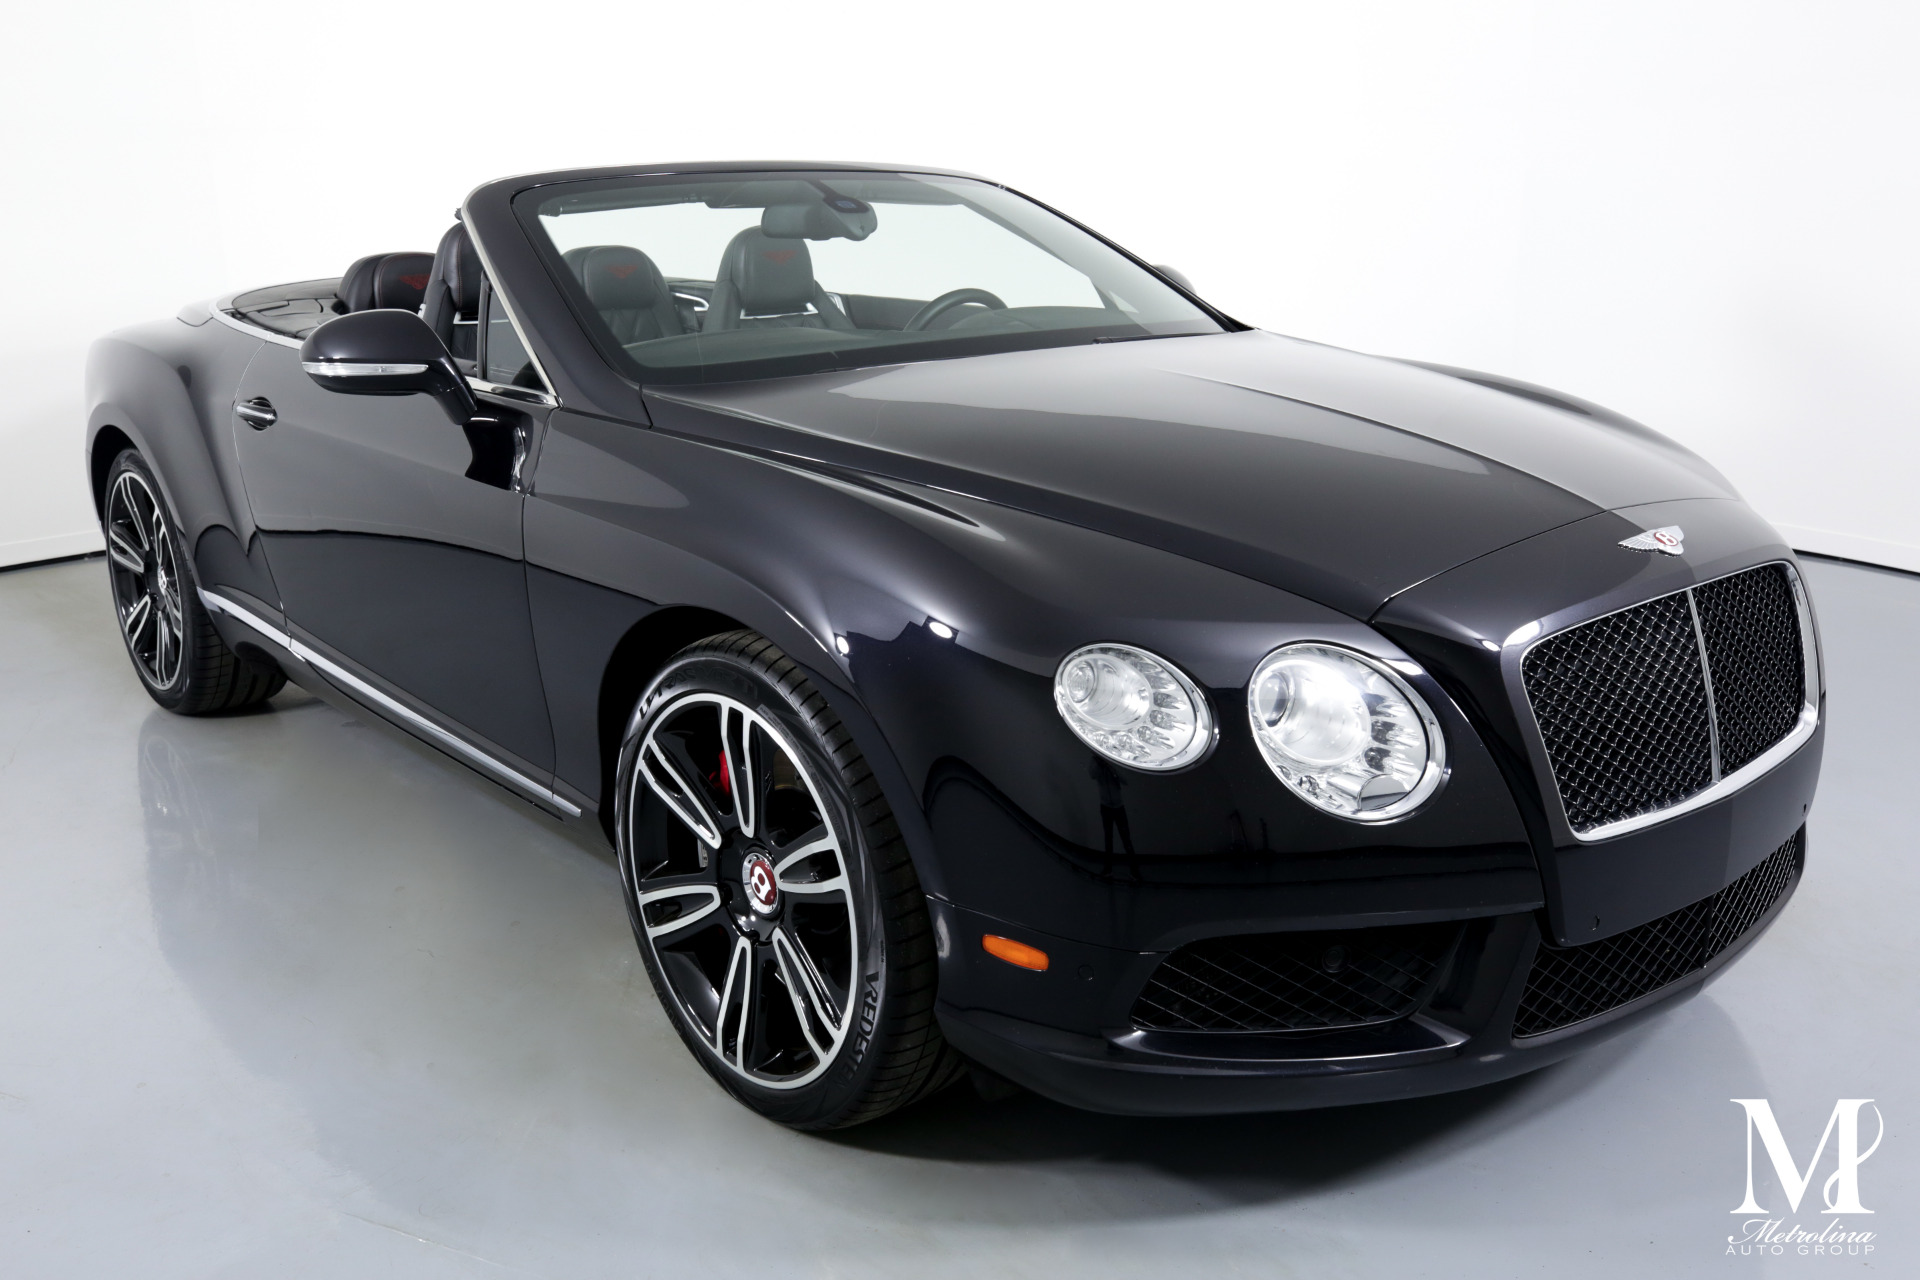 Used 2014 Bentley Continental GT V8 for sale $87,456 at Metrolina Auto Group in Charlotte NC 28217 - 3